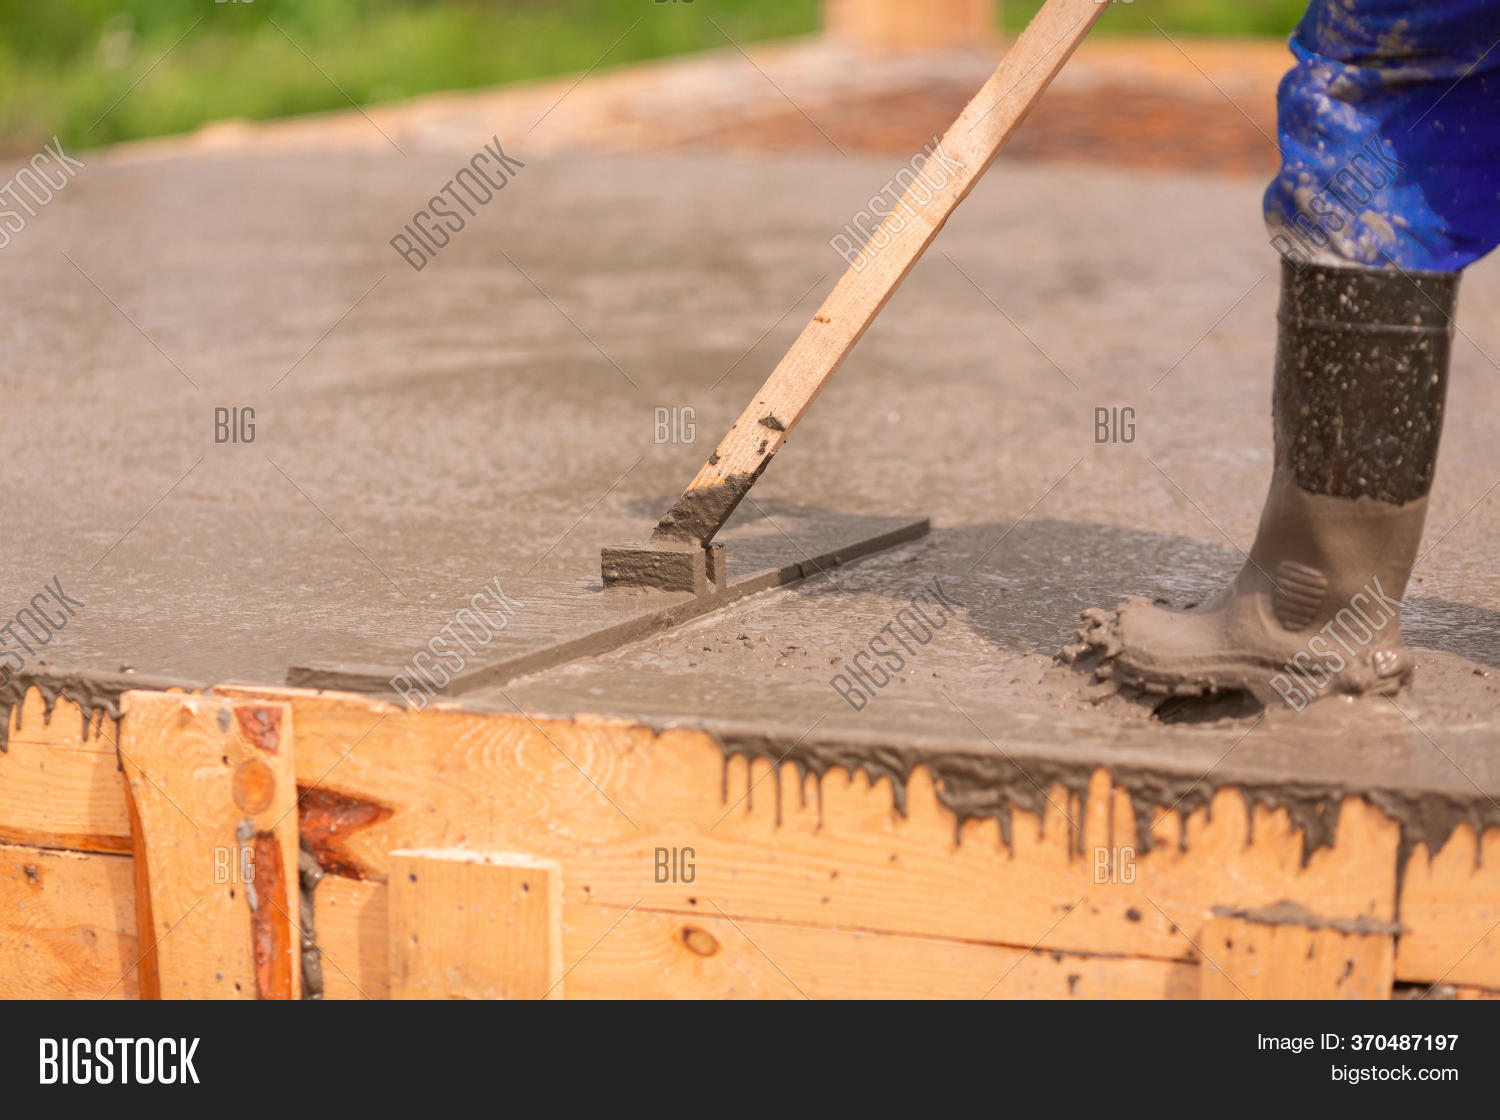 Leveling Cement Image Photo Free Trial Bigstock